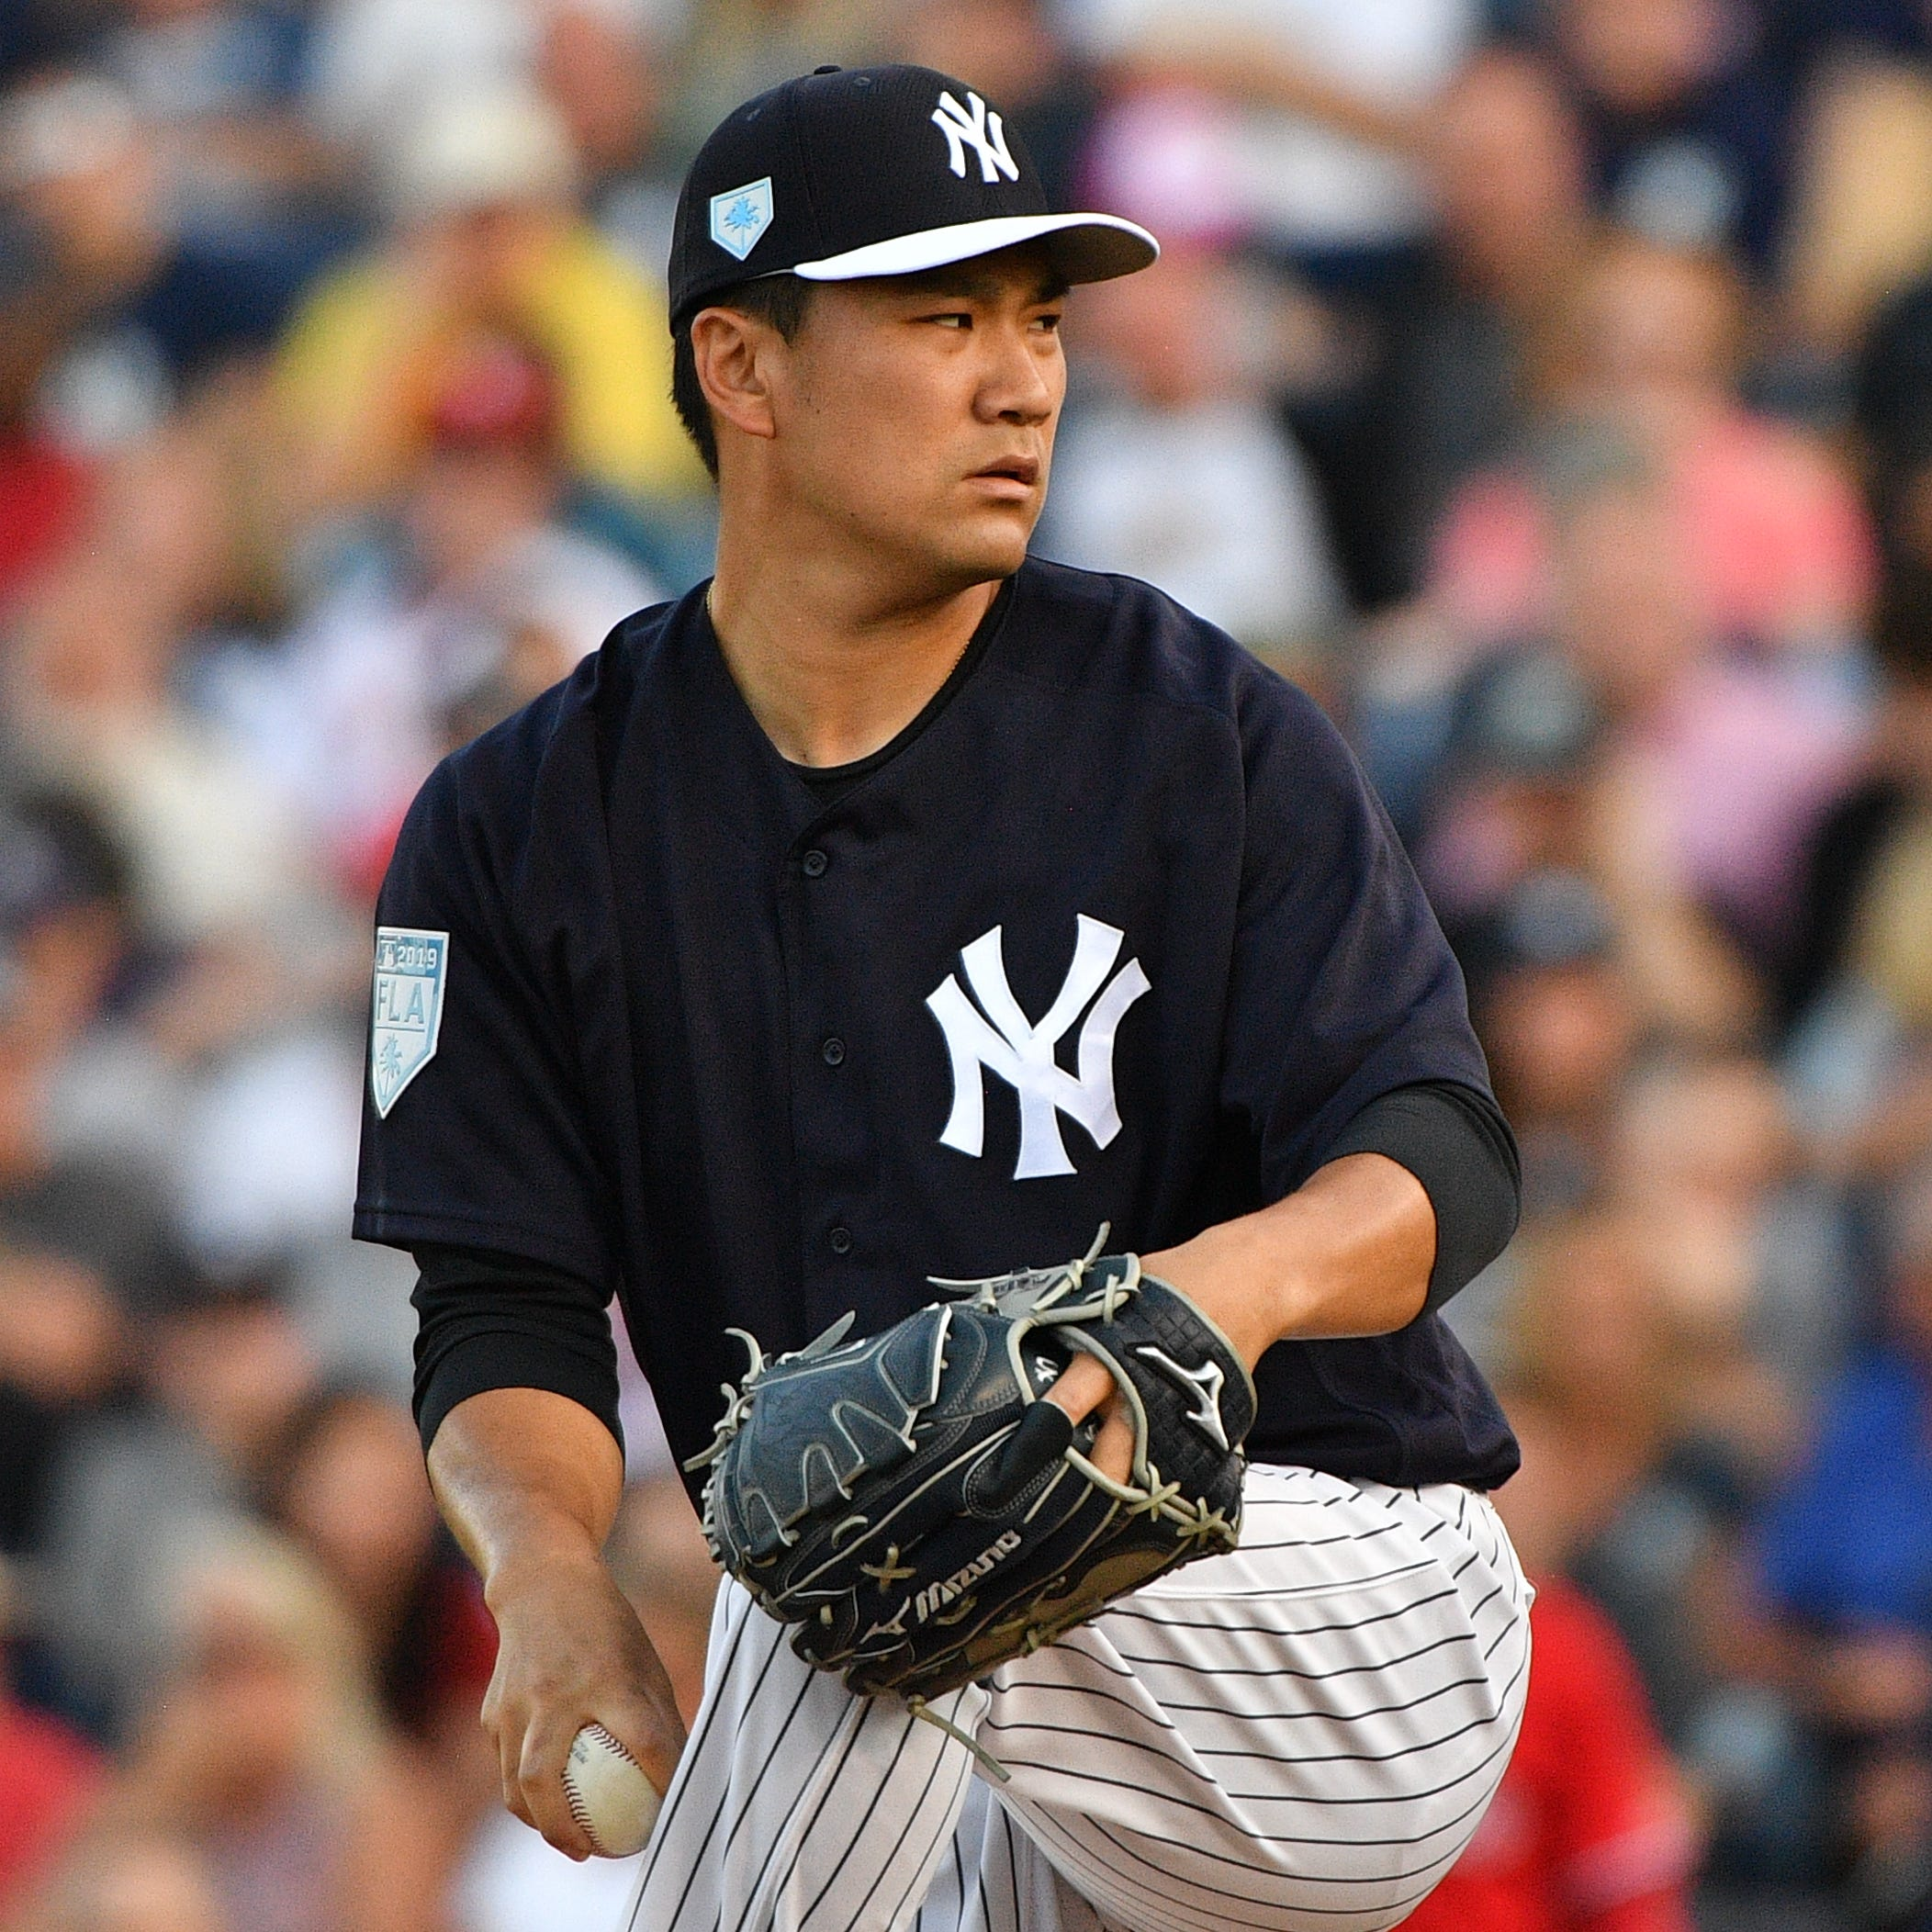 Masahiro Tanaka seeks first opening day win with the Yankees